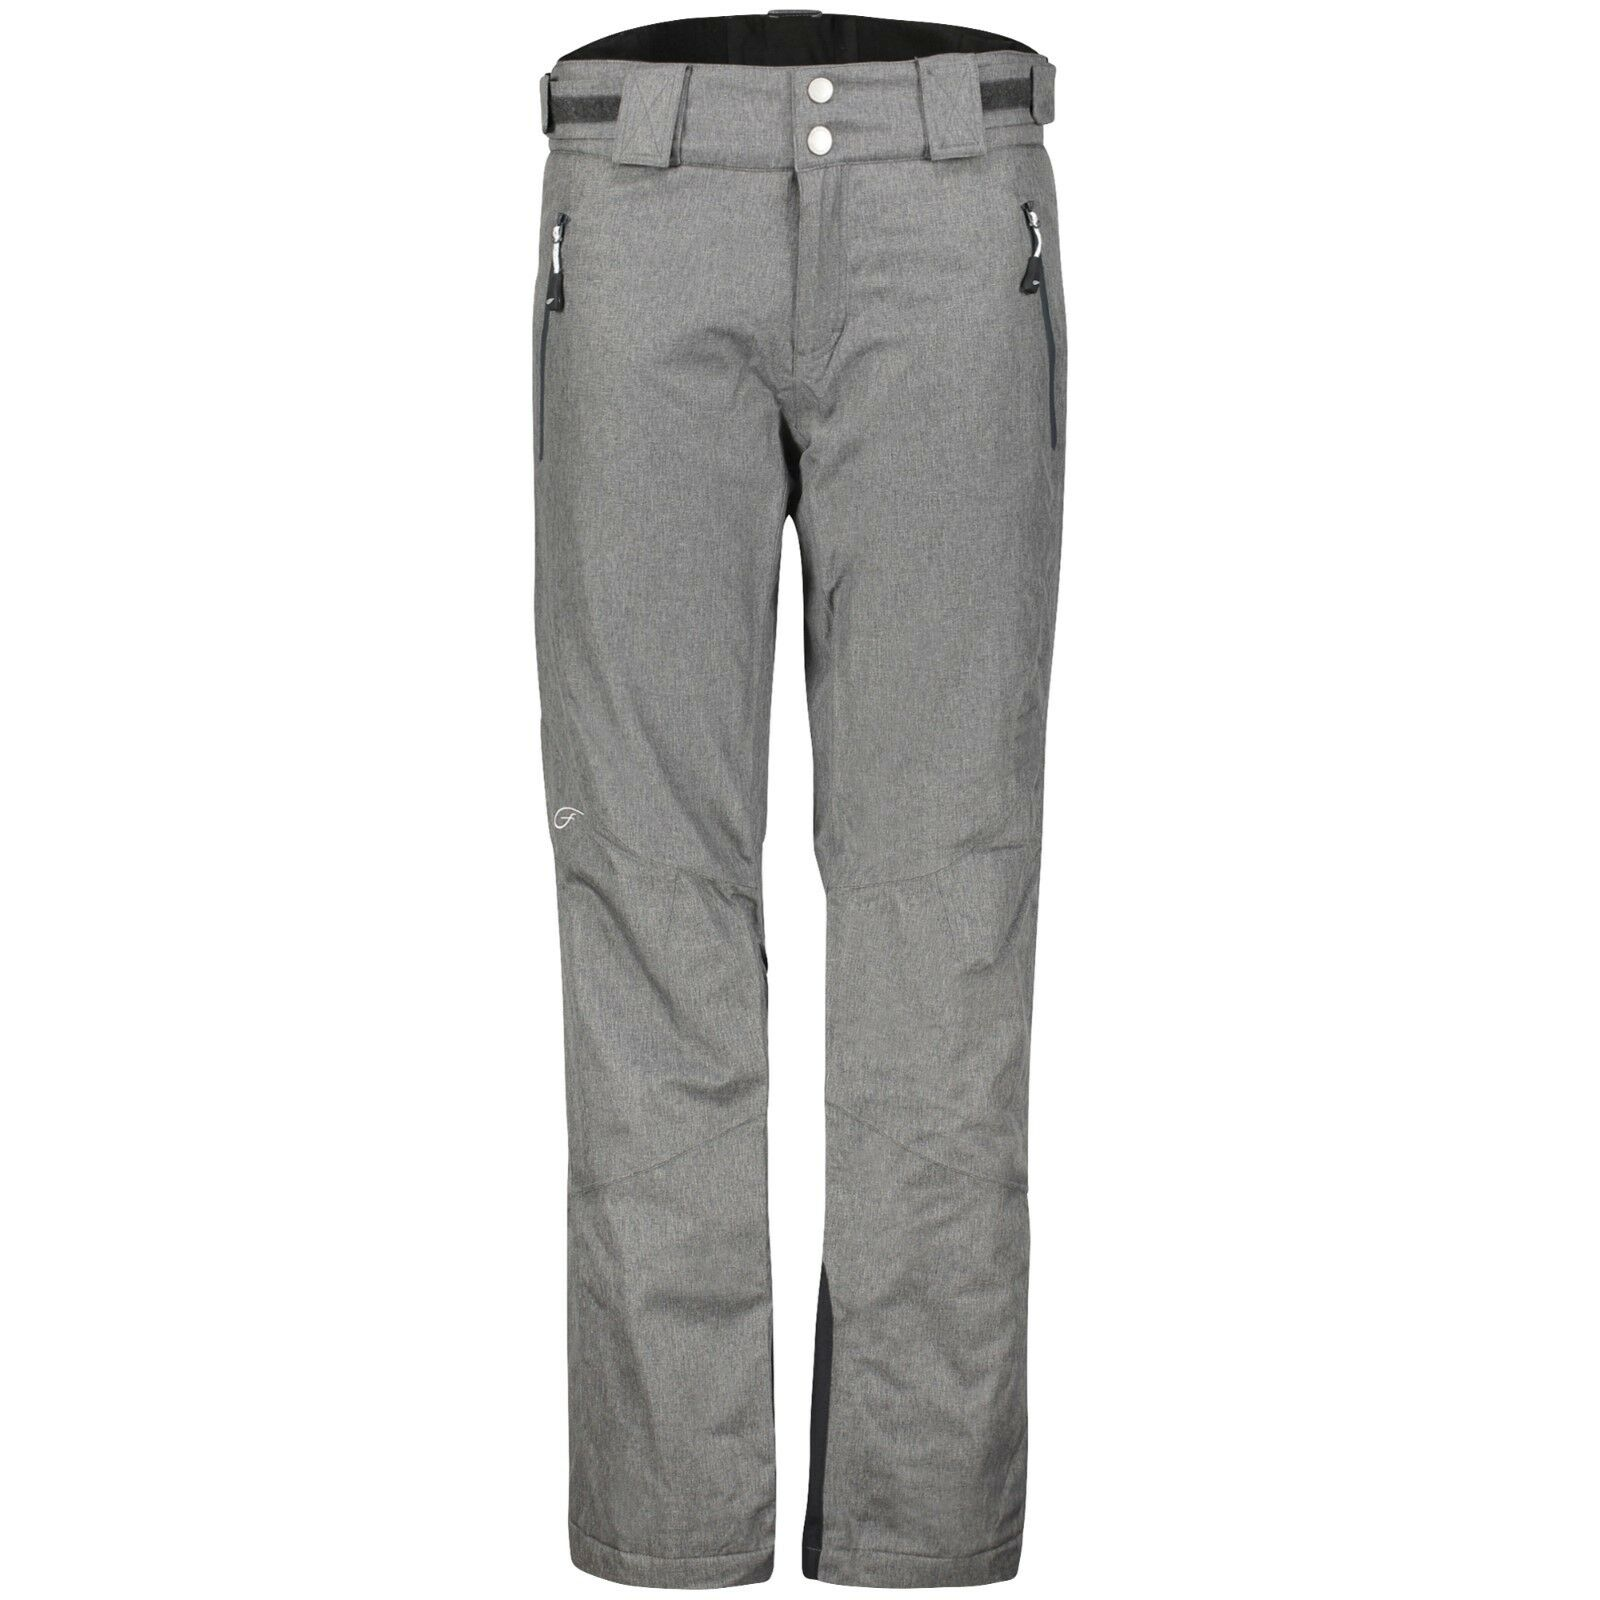 Five Seasons Paley Pant Women Winter Trousers  Salopettes Ladies Lined Grey  take up to 70% off